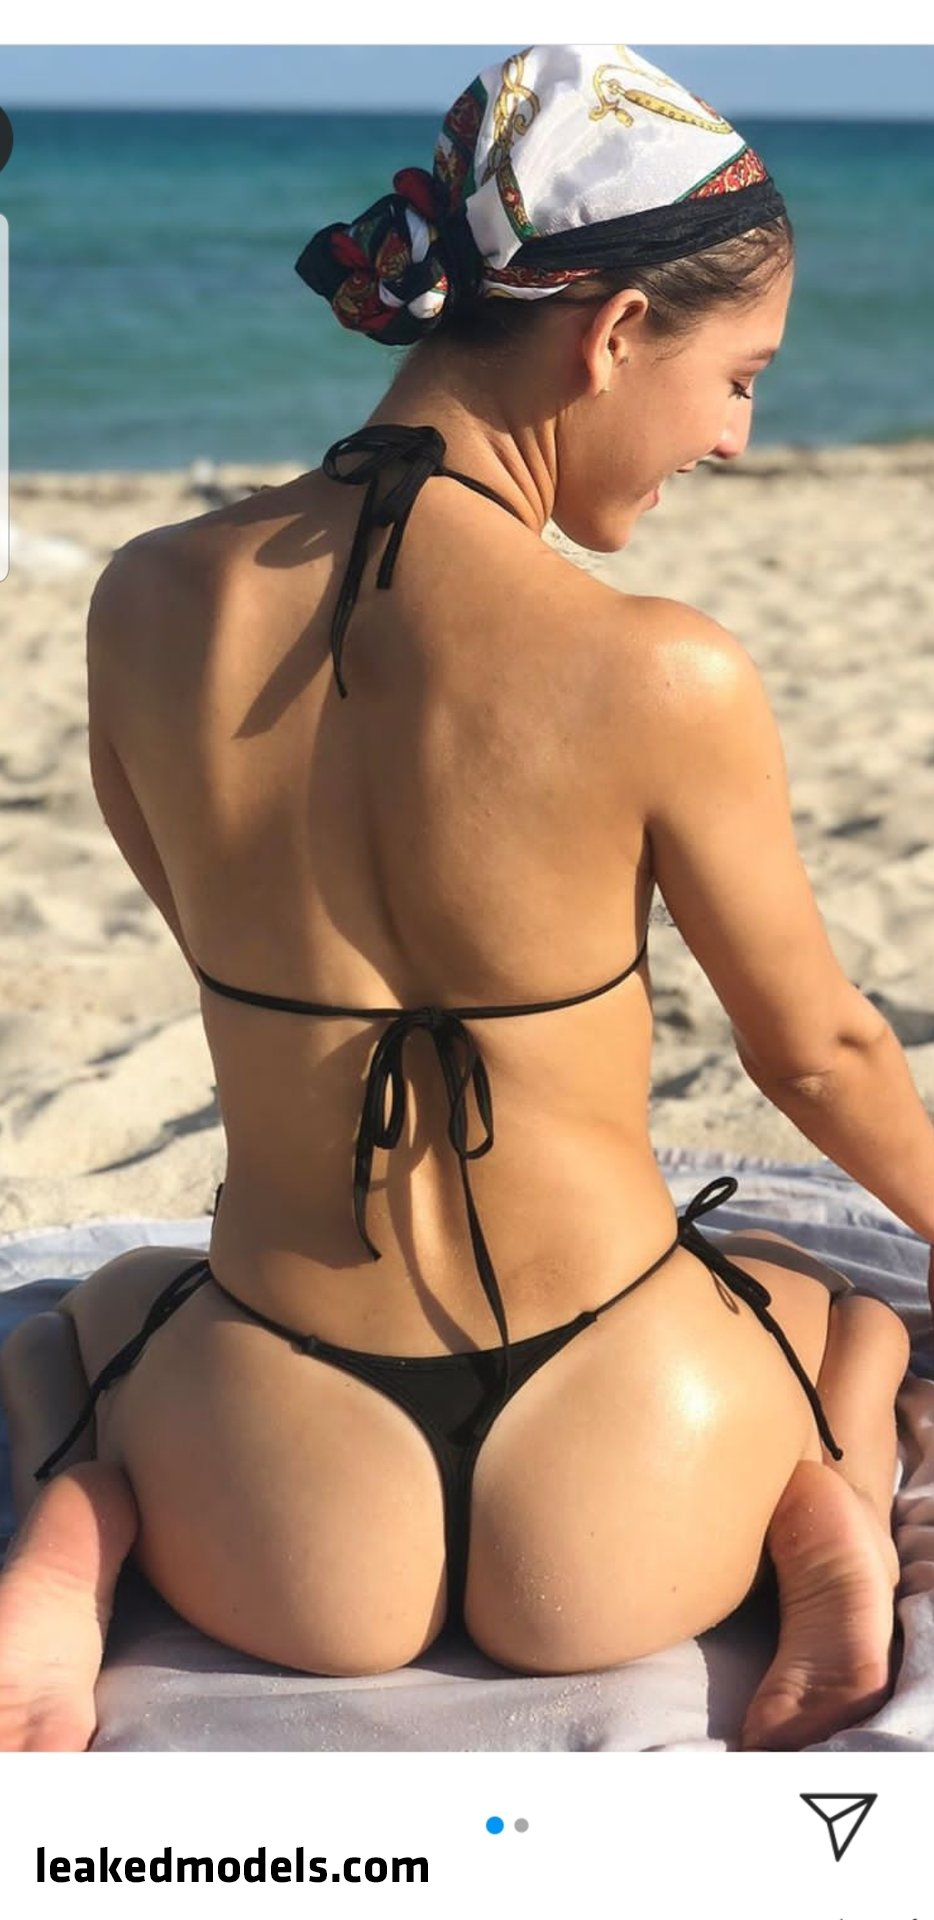 ayydulcee OnlyFans Nude Leaks (25 Photos)